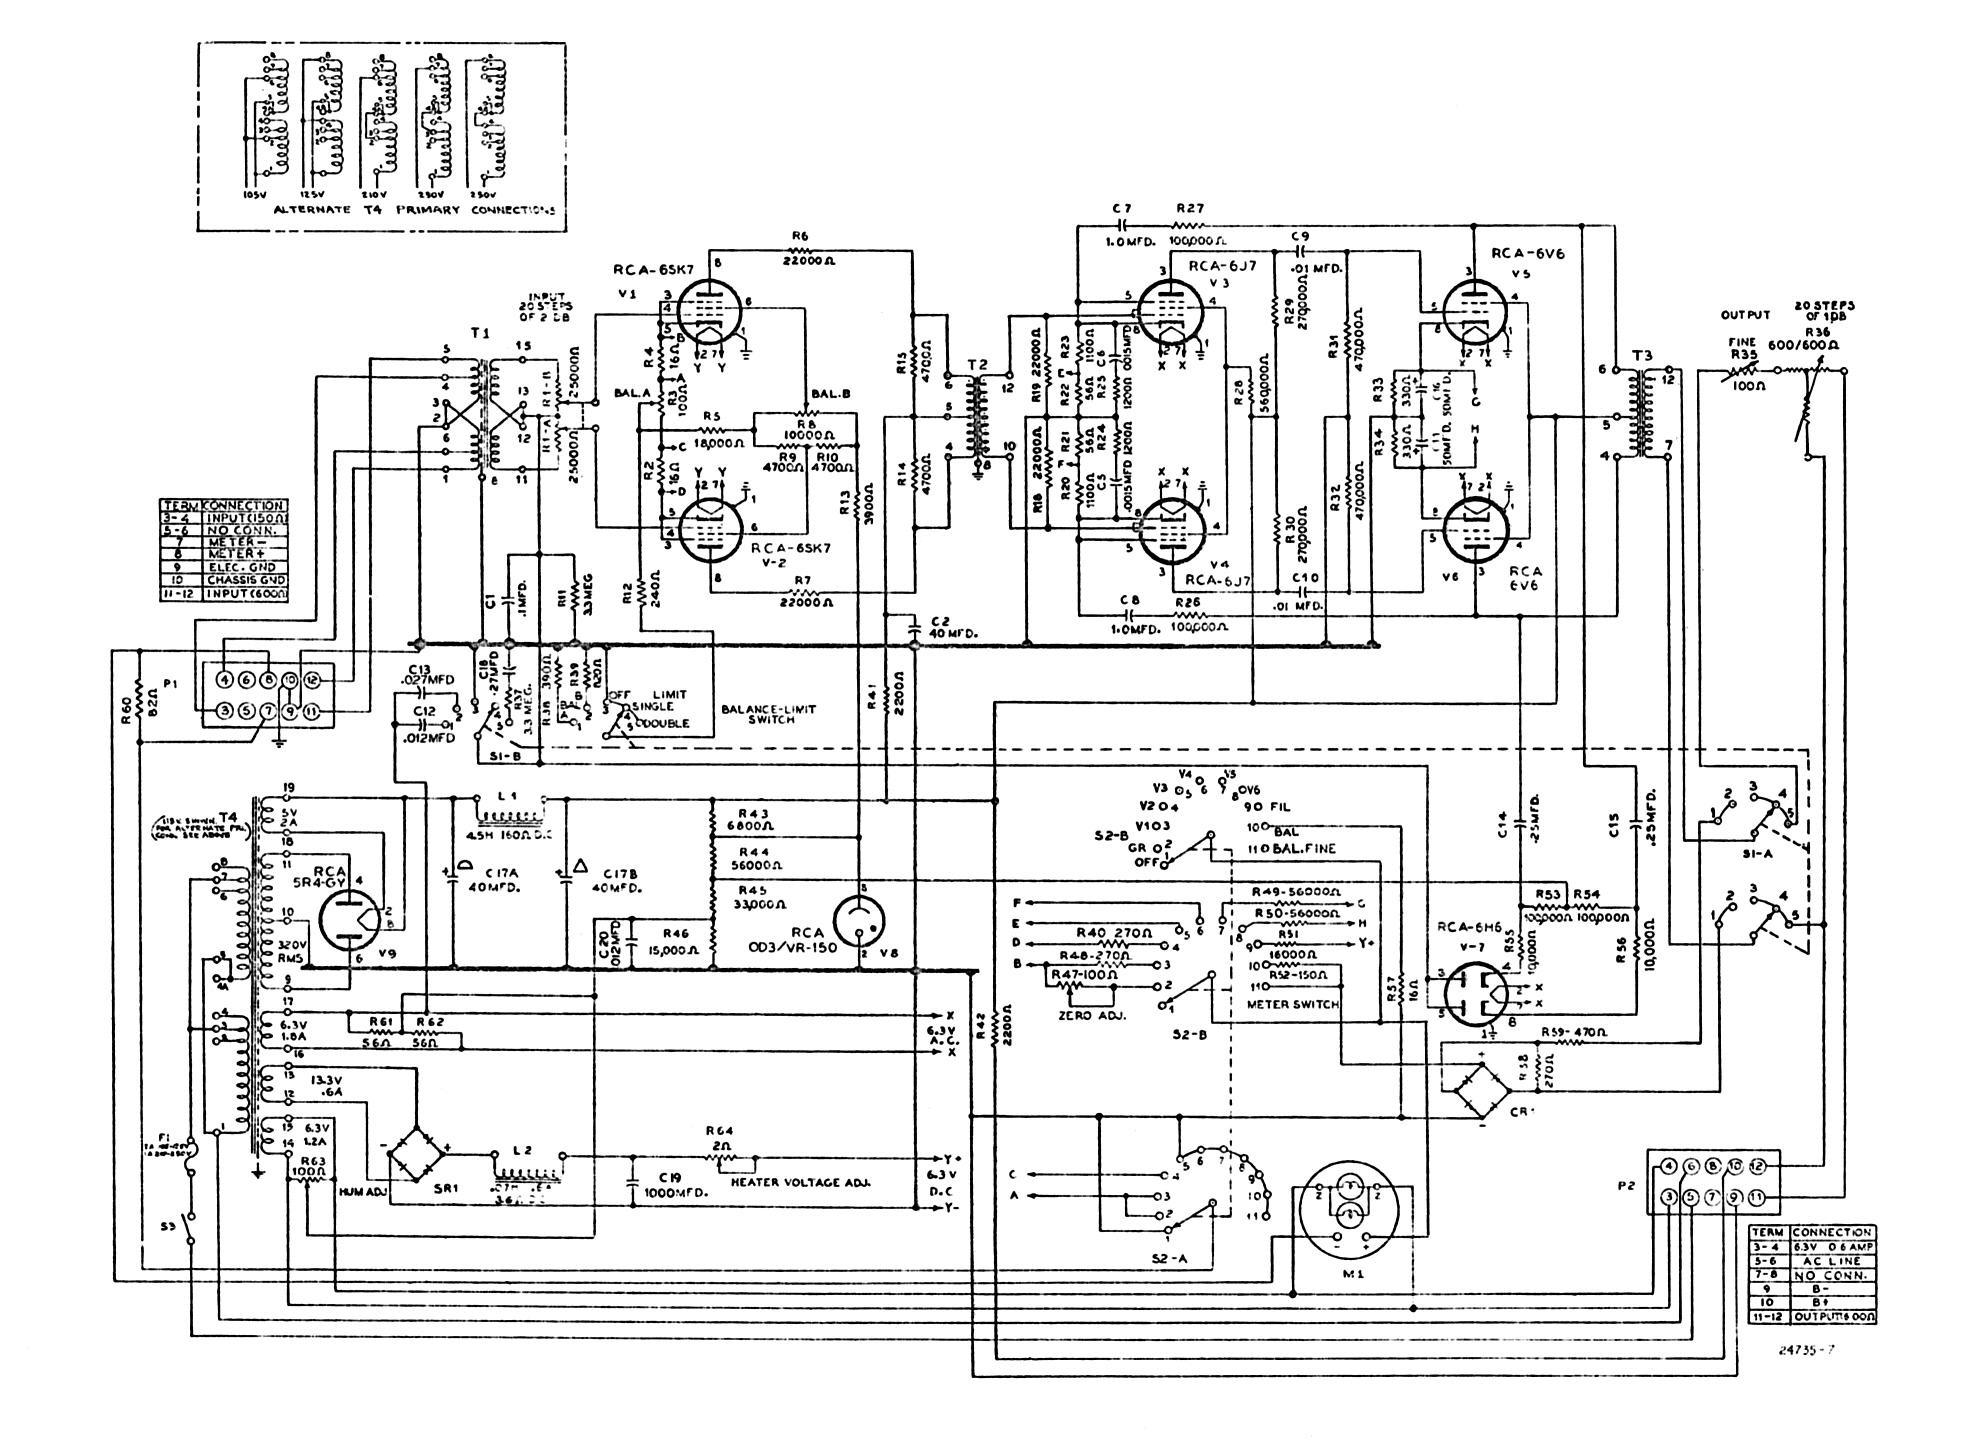 Wiring Diagrams Ether  Cable Connector Cat5e With also Cat6 Ether  Wiring Diagram besides Ford F150 Wiring Harness Diagram furthermore Rj21 Wiring Diagram besides Old Phone Jack Wiring Diagram Awesome Utp Color Photos And Cable For Telephone Diagrams. on cat5e connector wiring diagram